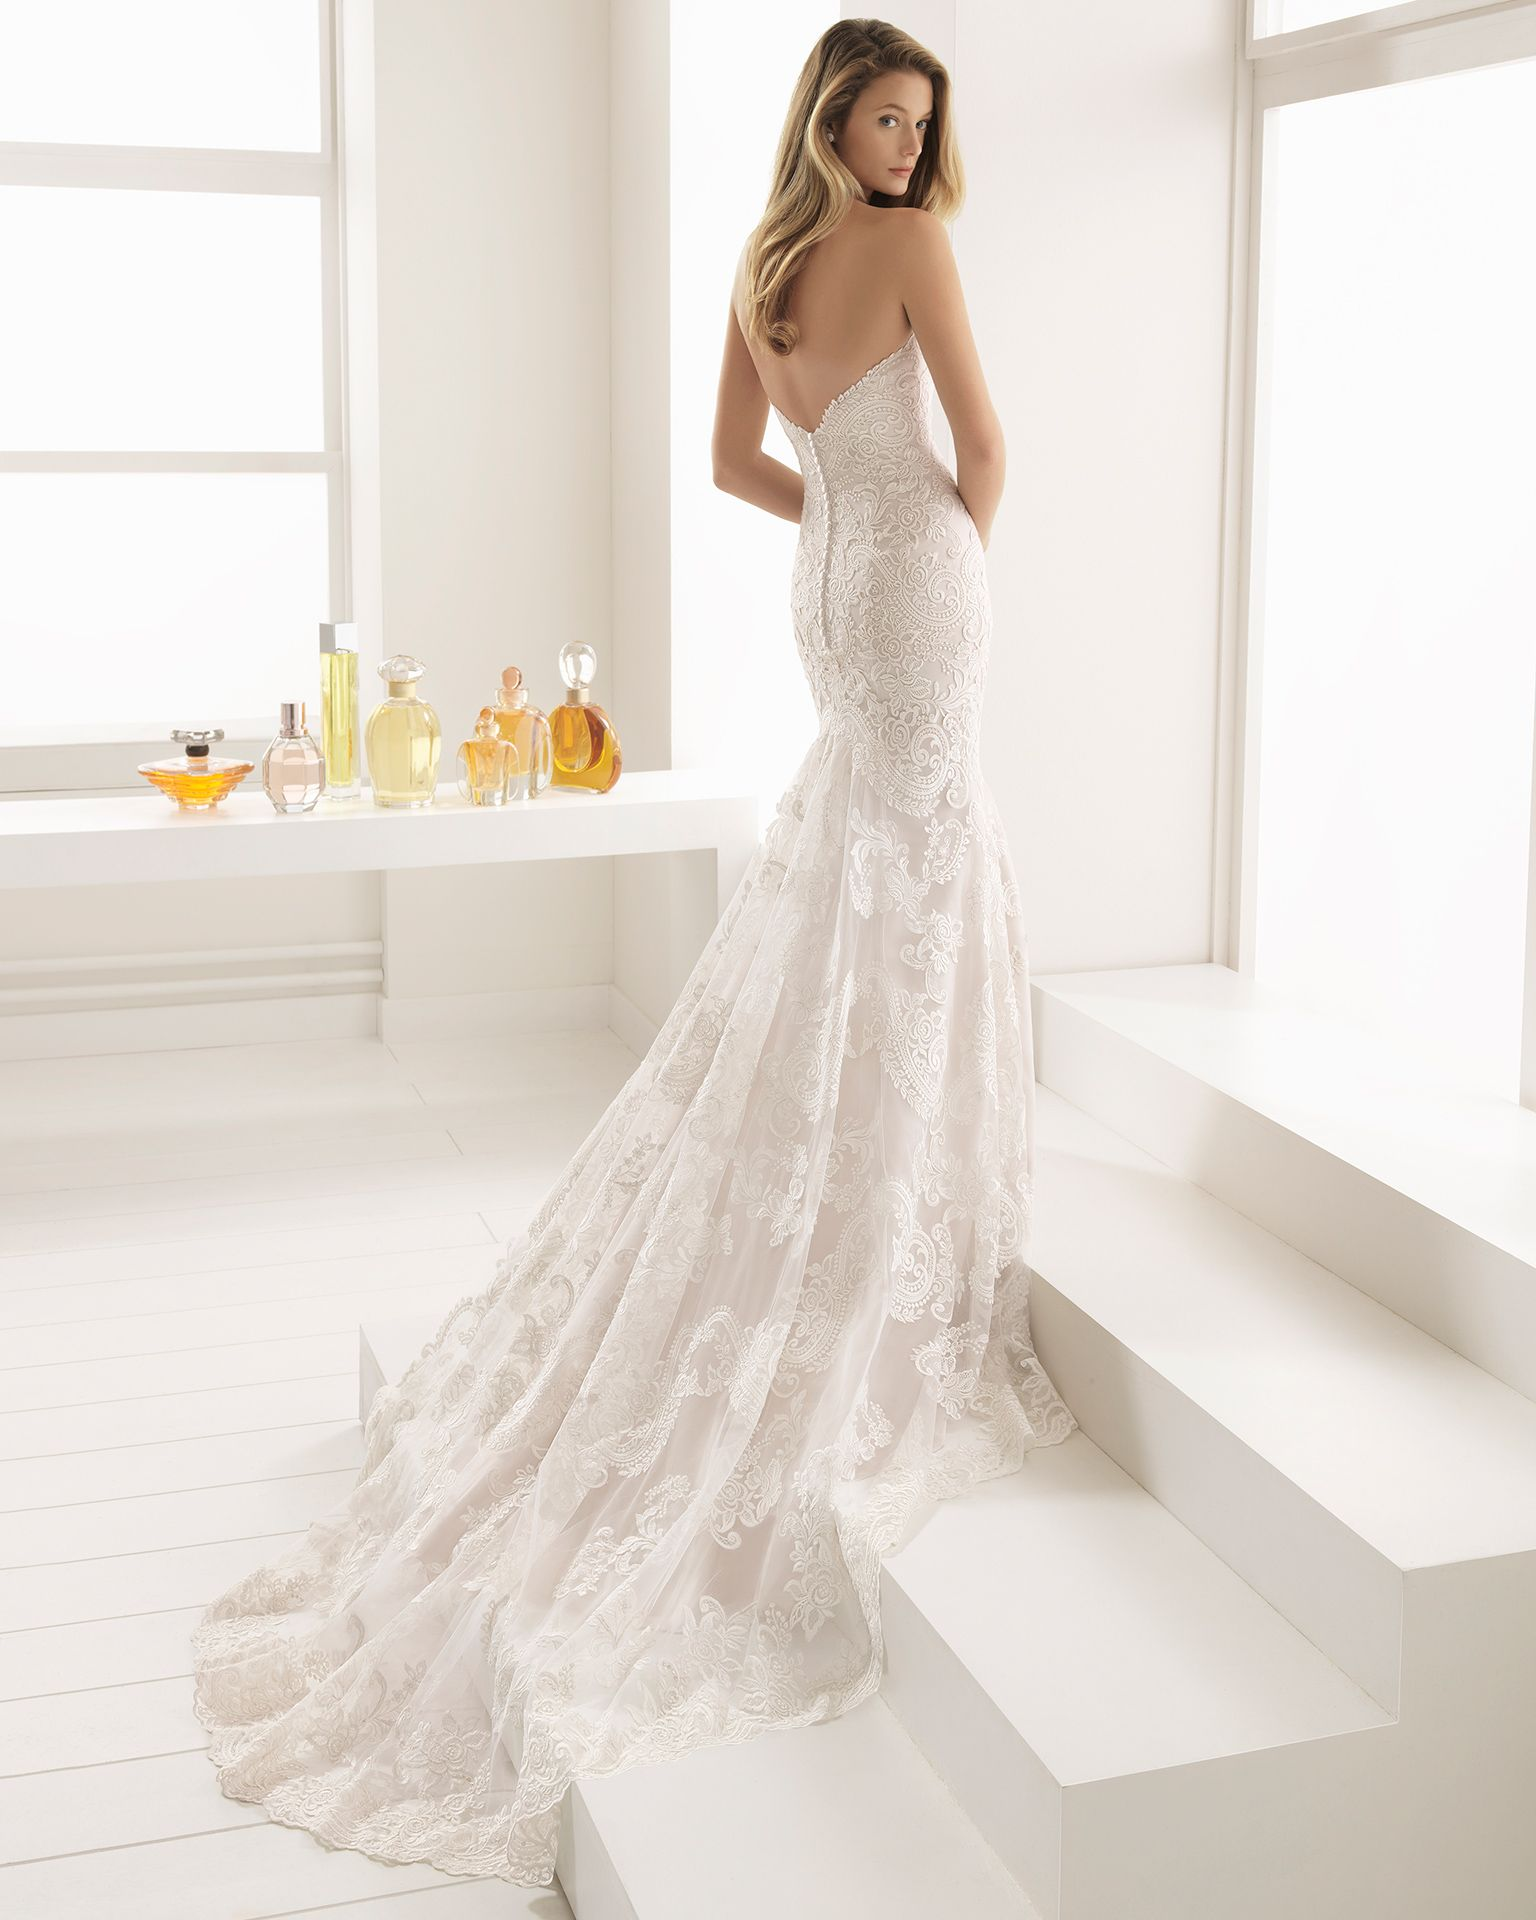 88fe36f5eda9 BALLEY back view Aire Barcelona Wedding Dresses, Bridal Style, Gowns,  Elegant, Dress